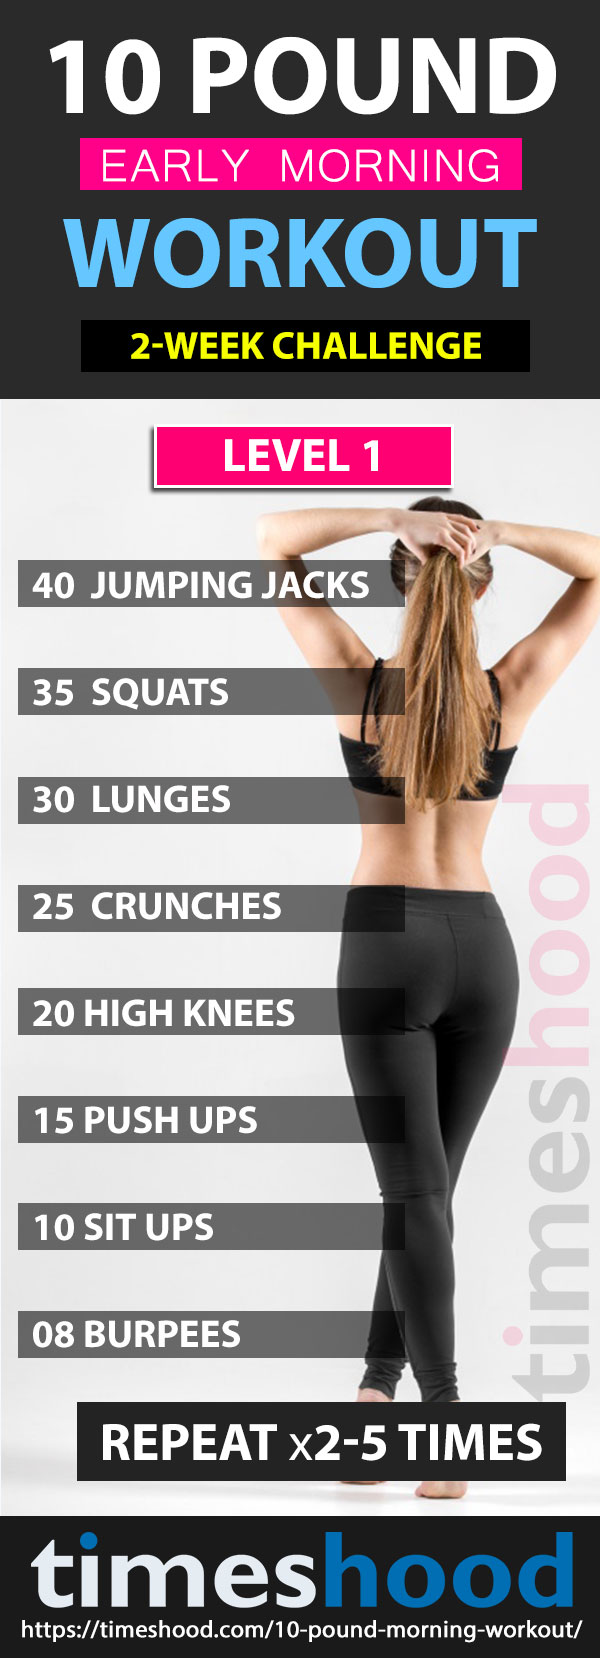 Lose Upto 10-Pound With This Early Morning Workout - Timeshood